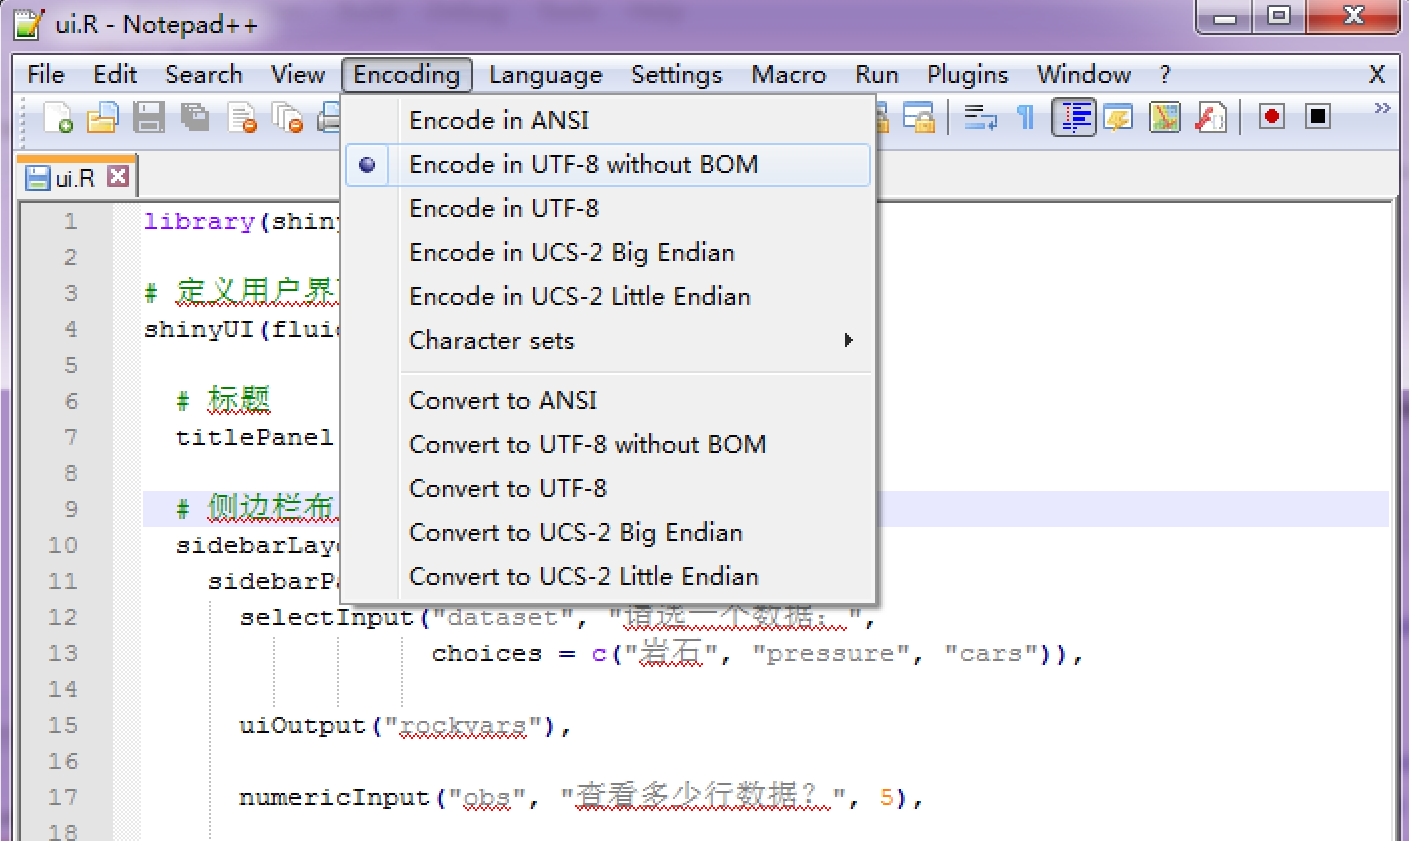 UTF-8 without BOM in Notepad++  sc 1 st  RStudio & Shiny - Unicode characters in Shiny apps